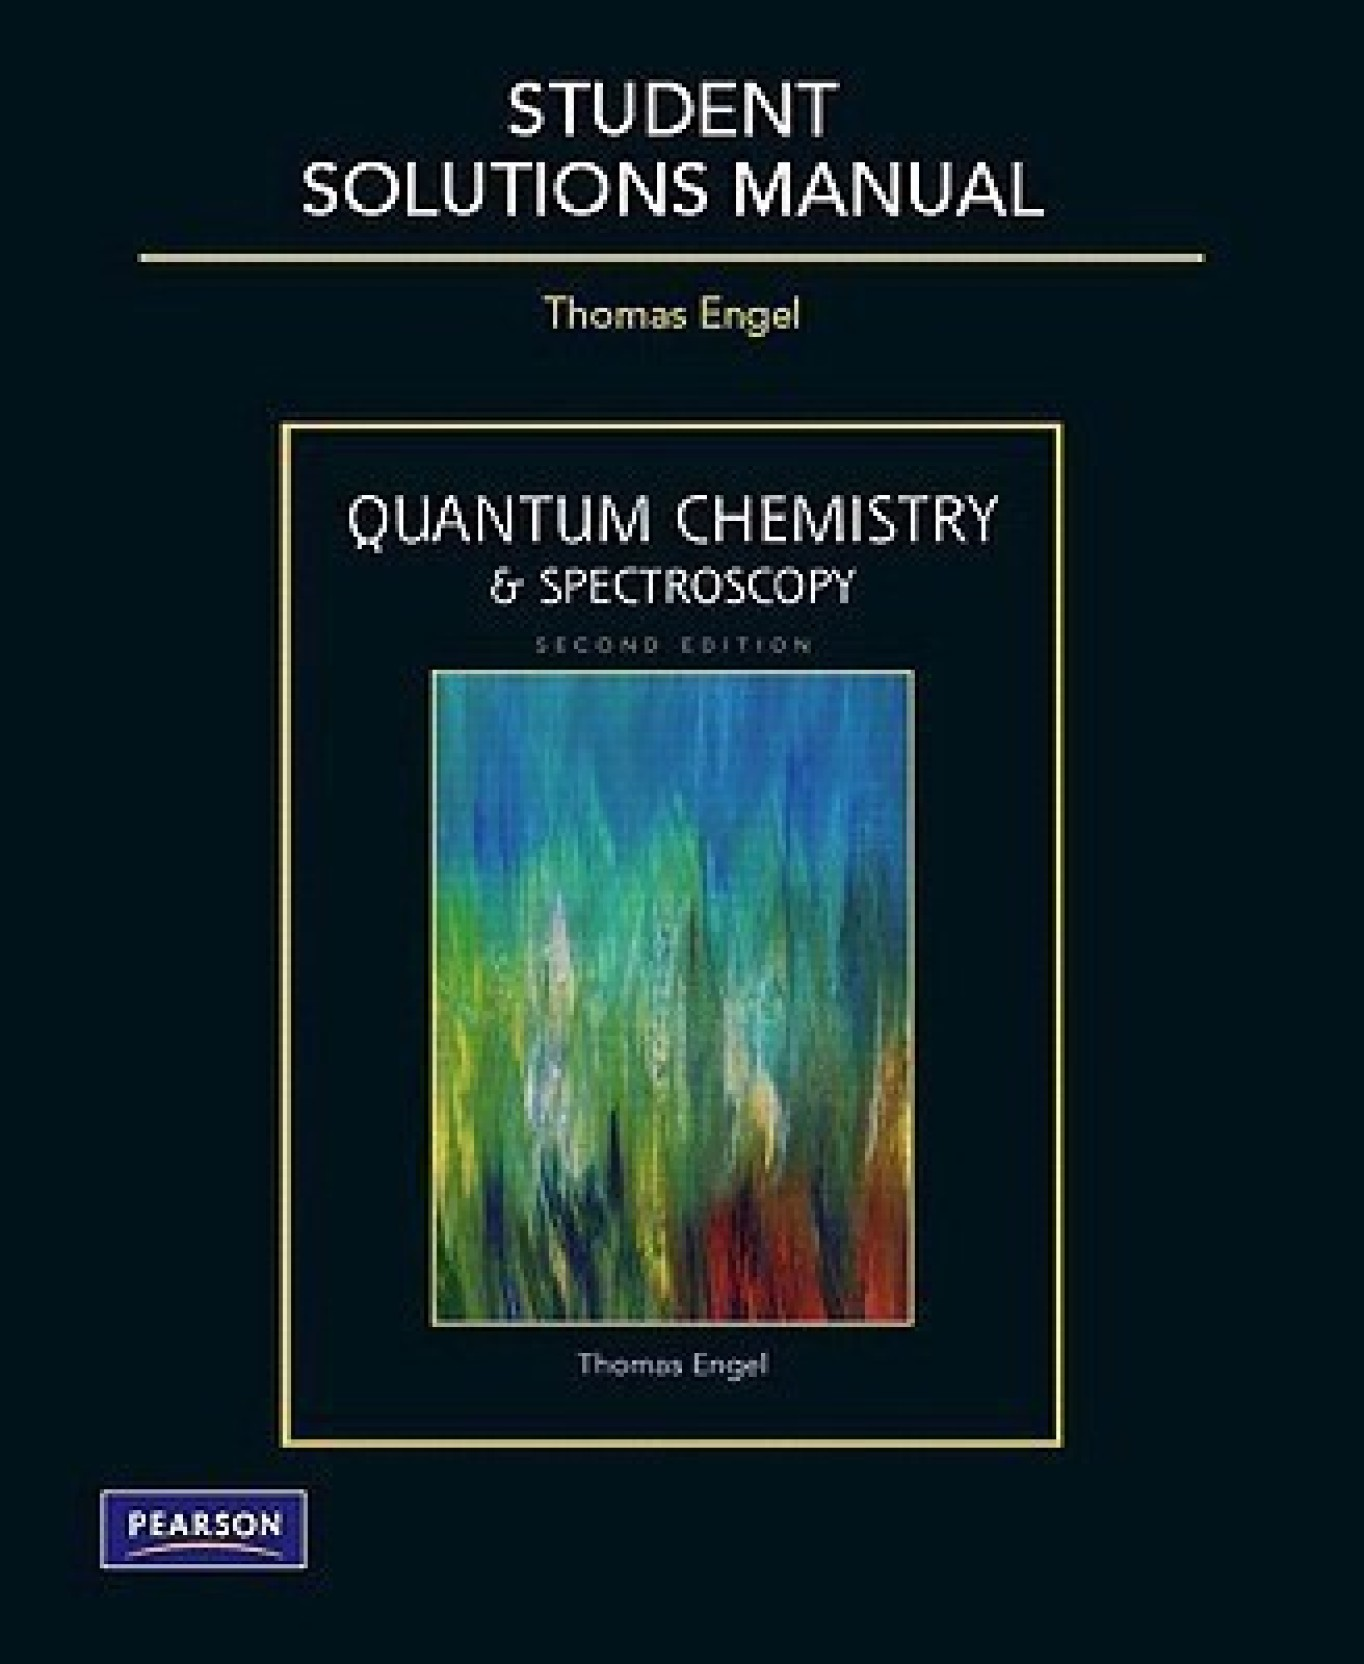 Student Solutions Manual for Quantum Chemistry and Spectroscopy. Share